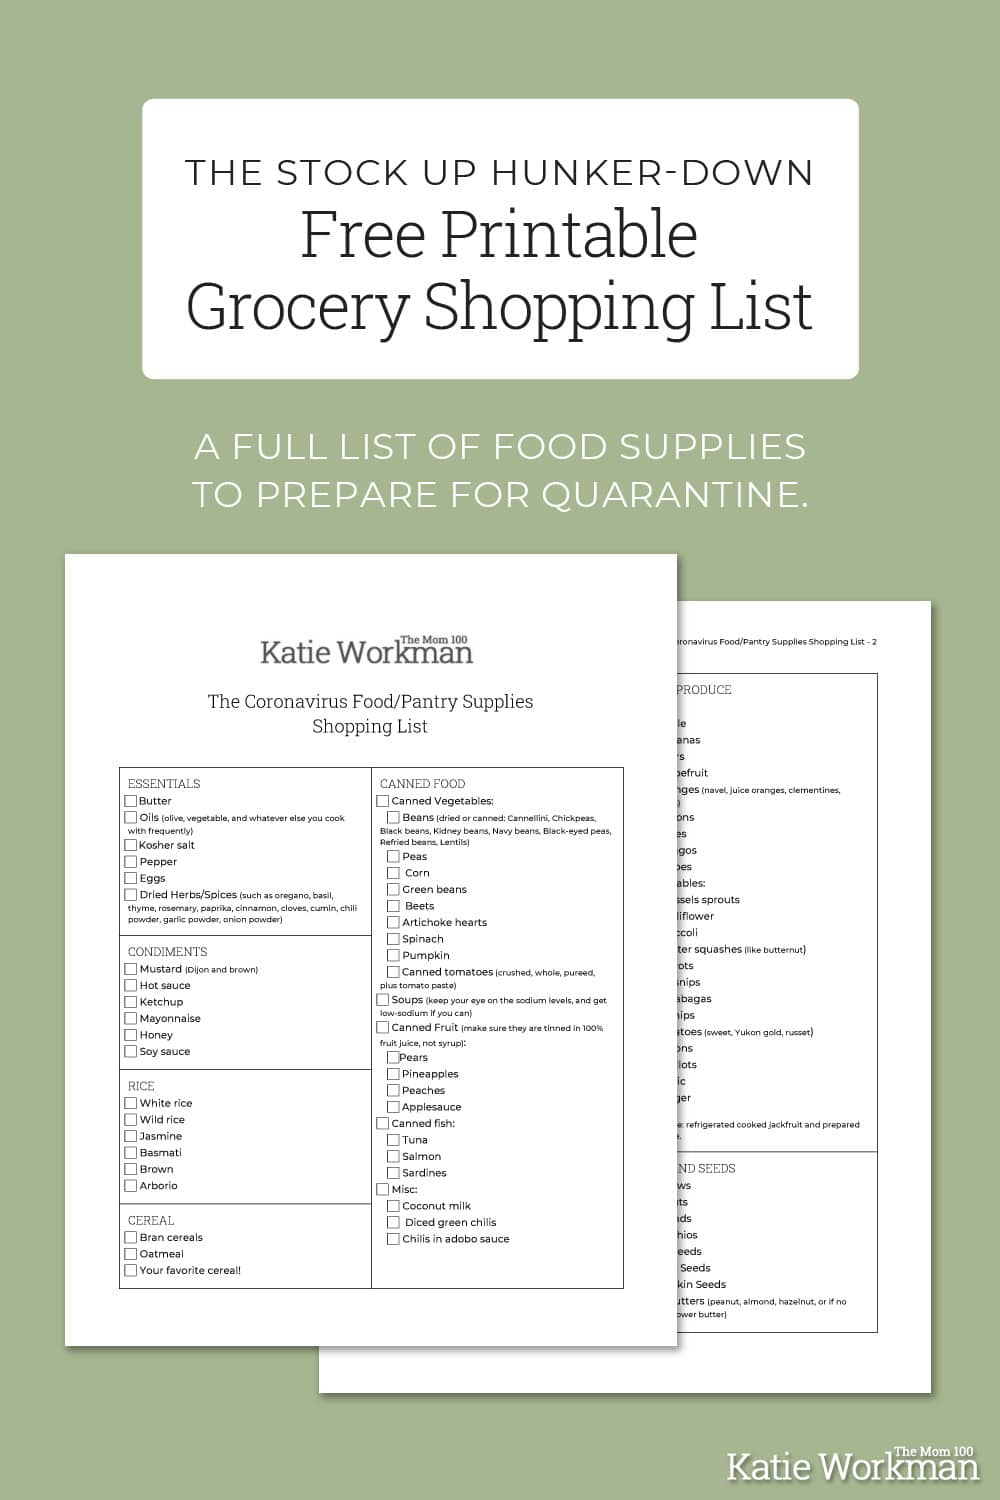 The Stock Up Hunker-Down Shopping List